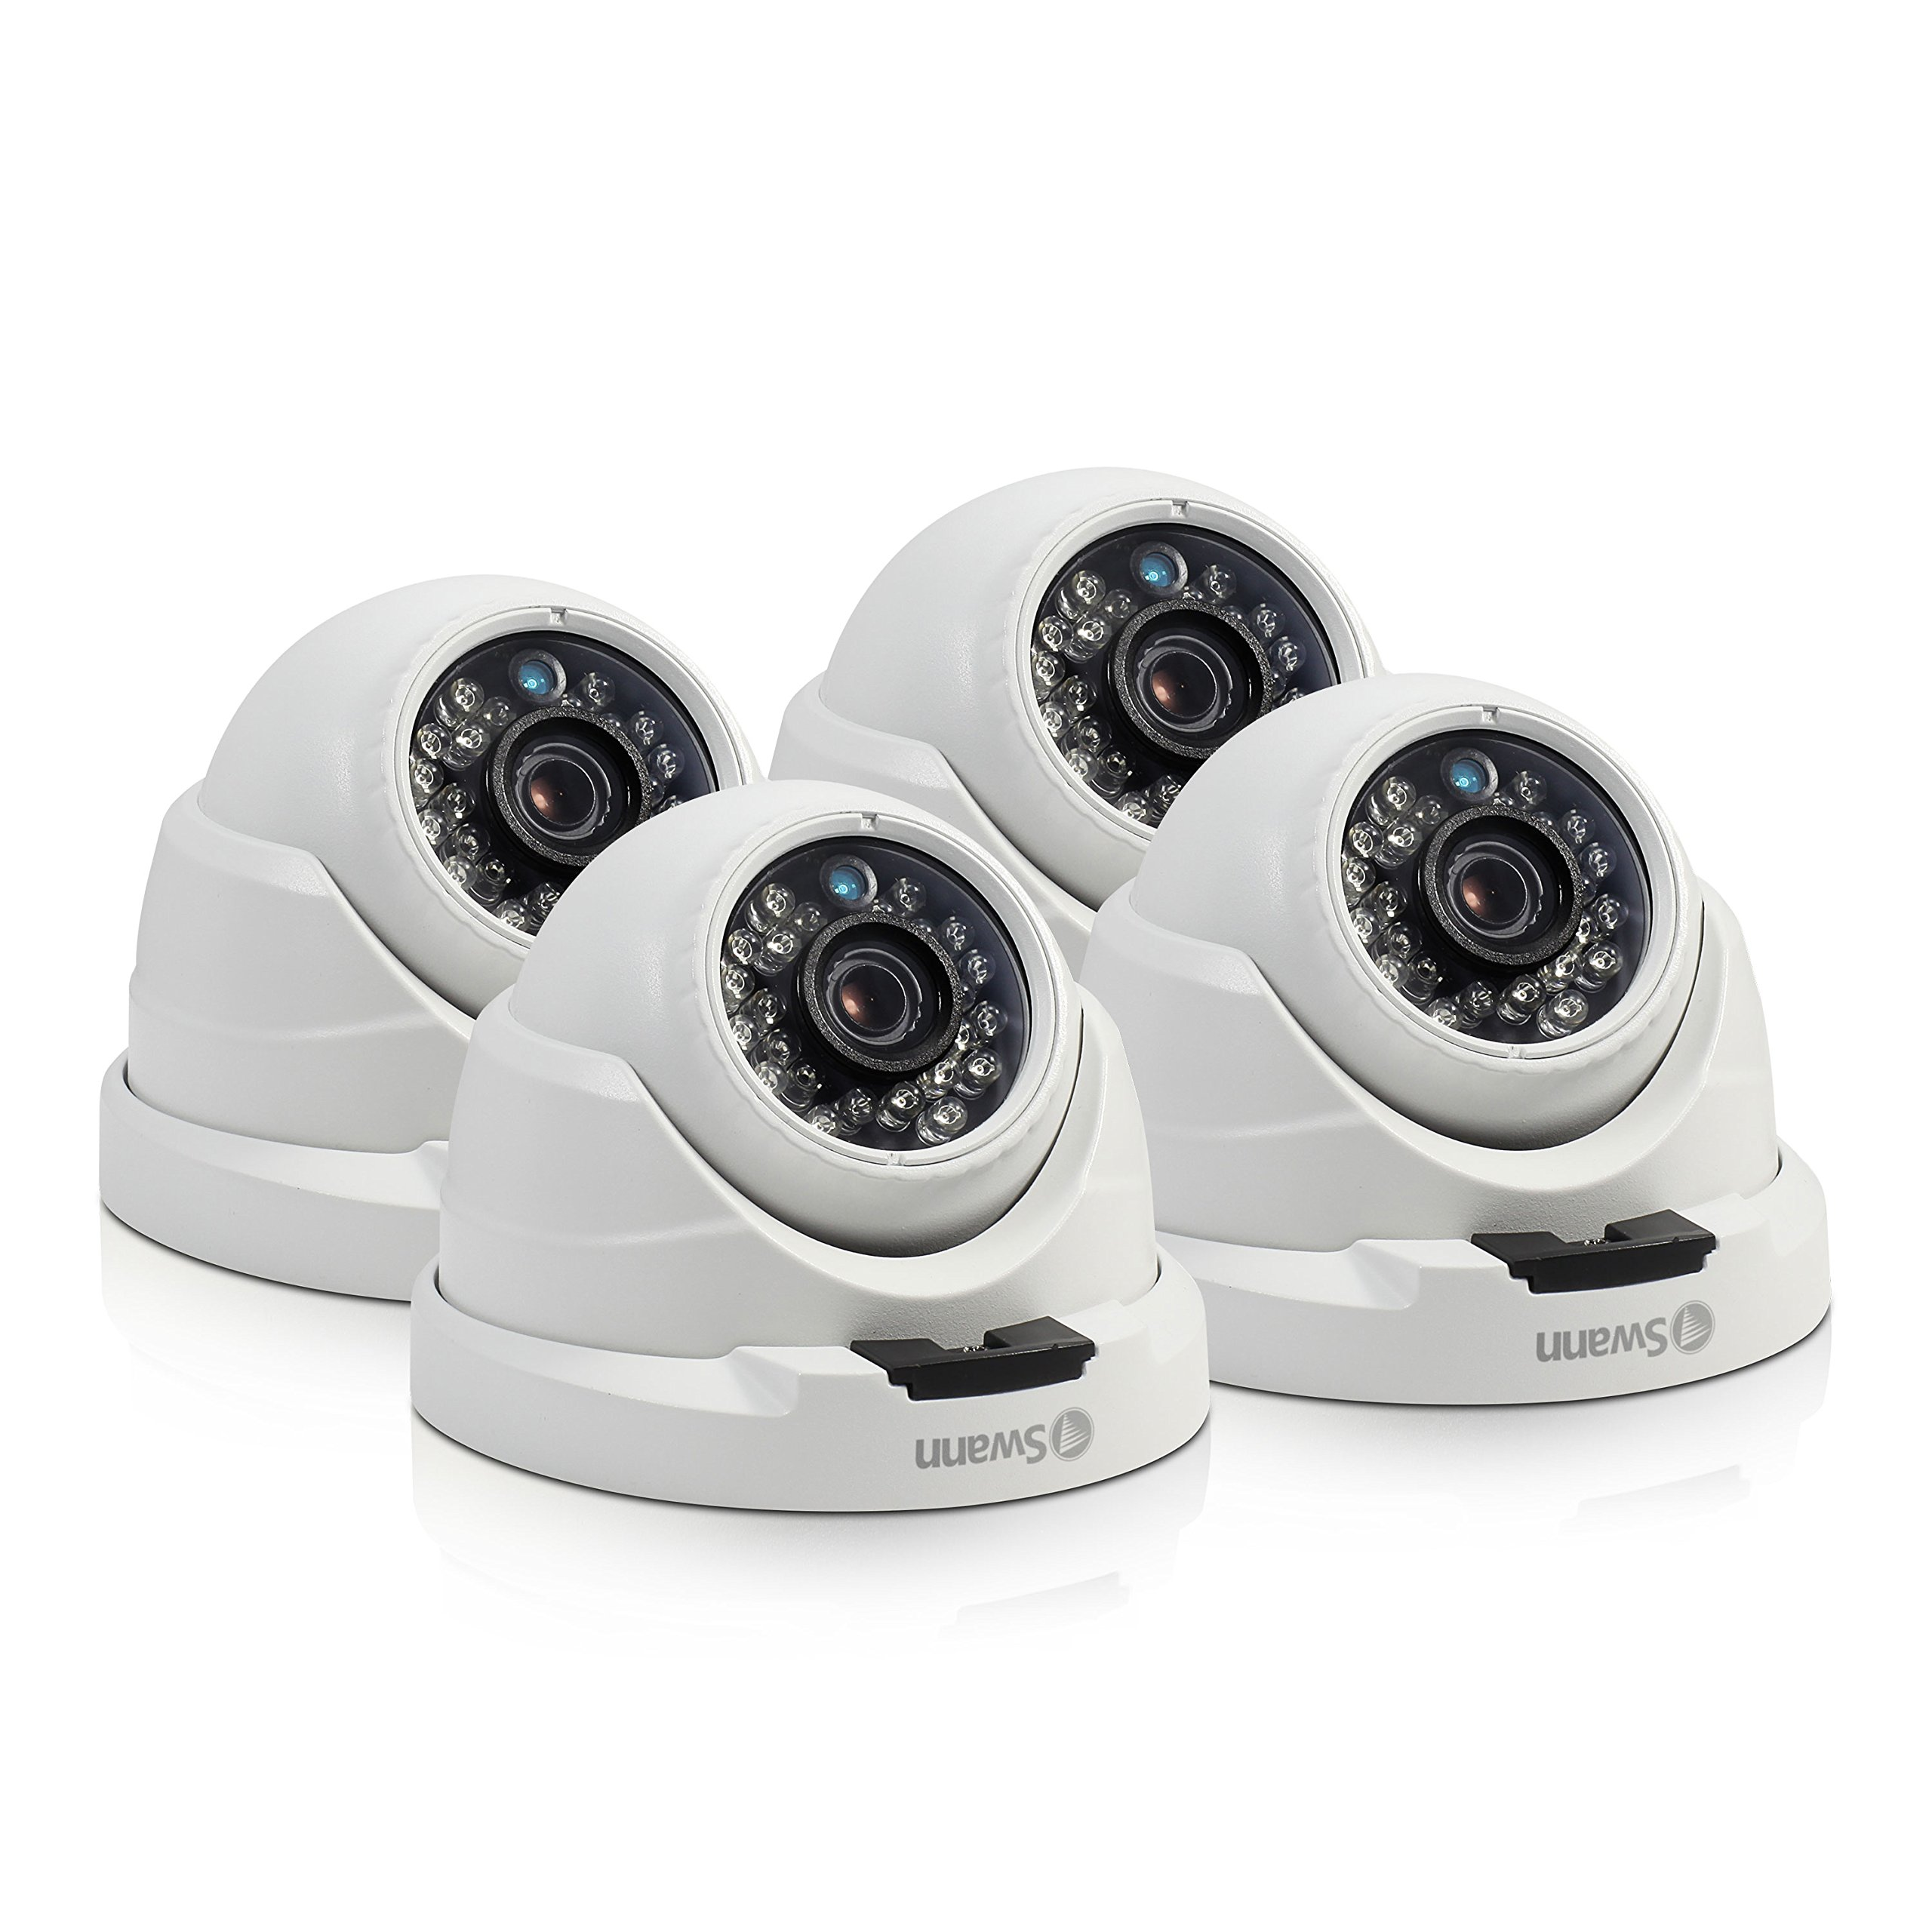 Swann CONHD-A4MPDPK4-US NHD-819 4MP Super HD White Security Outdoor Dome Network Turret Surveillance Camera - 4 Pack